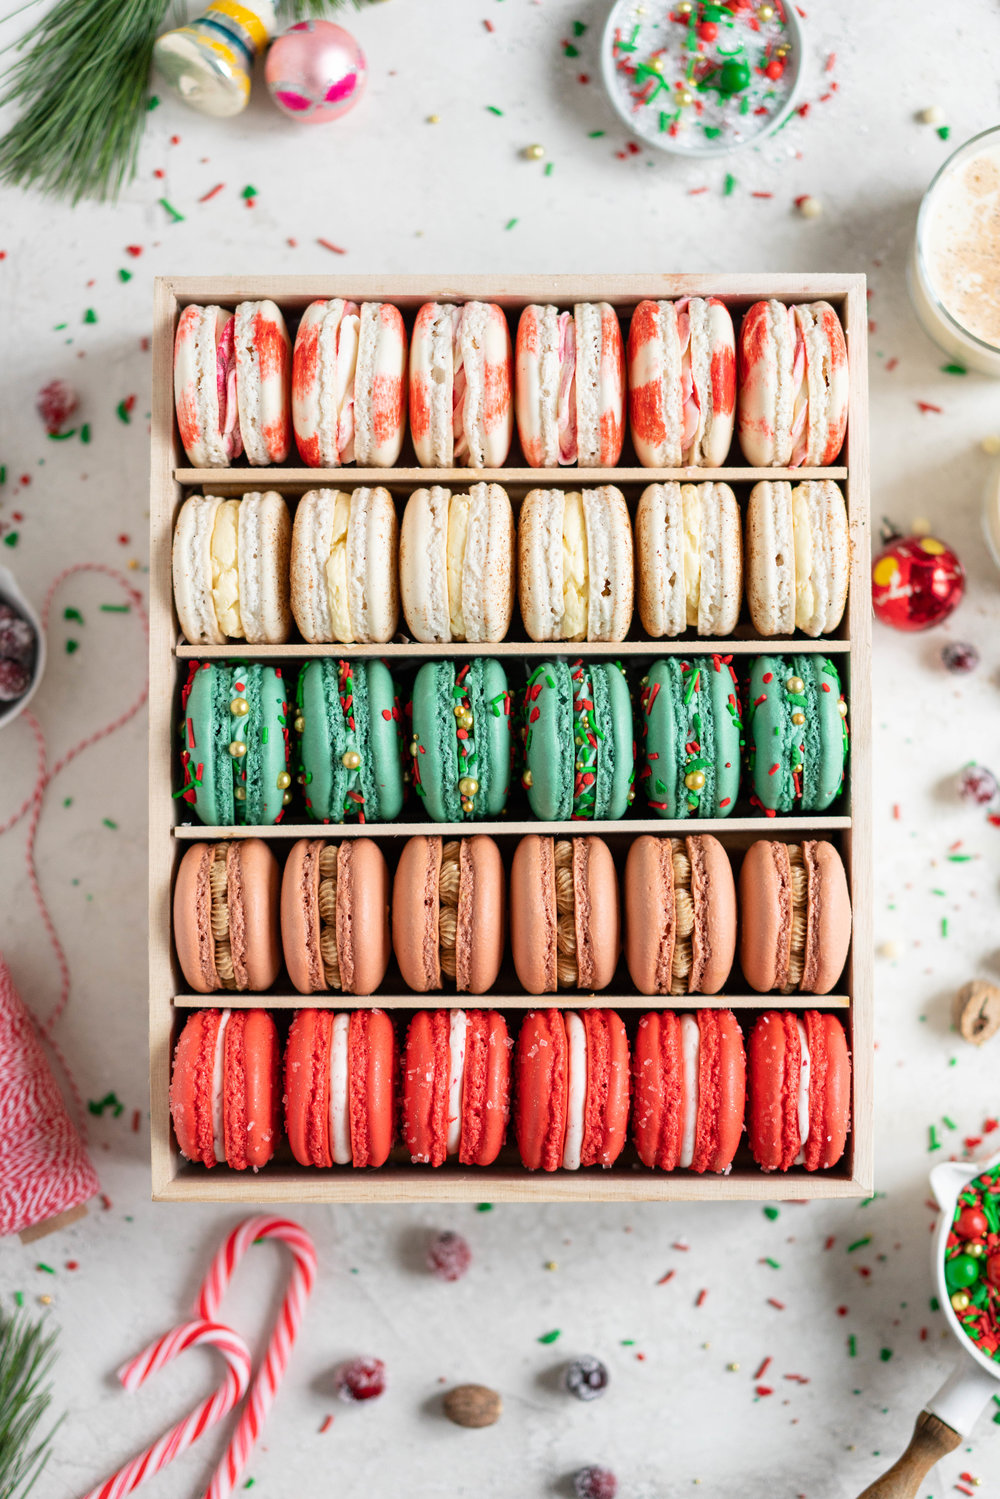 The Ultimate Christmas Macaron box - a cute, gluten free twist on the traditional cookie box. This cookie box is filled with the flavours of christmas - Candy Cane, Eggnog, Christmasfetti, Gingerbread, and cranberry. Each macaron is filled with a delicious complementary filling - ranging from american buttercream to German buttercream. This macaron box would make the perfect homemade gift. Grab the recipes now!